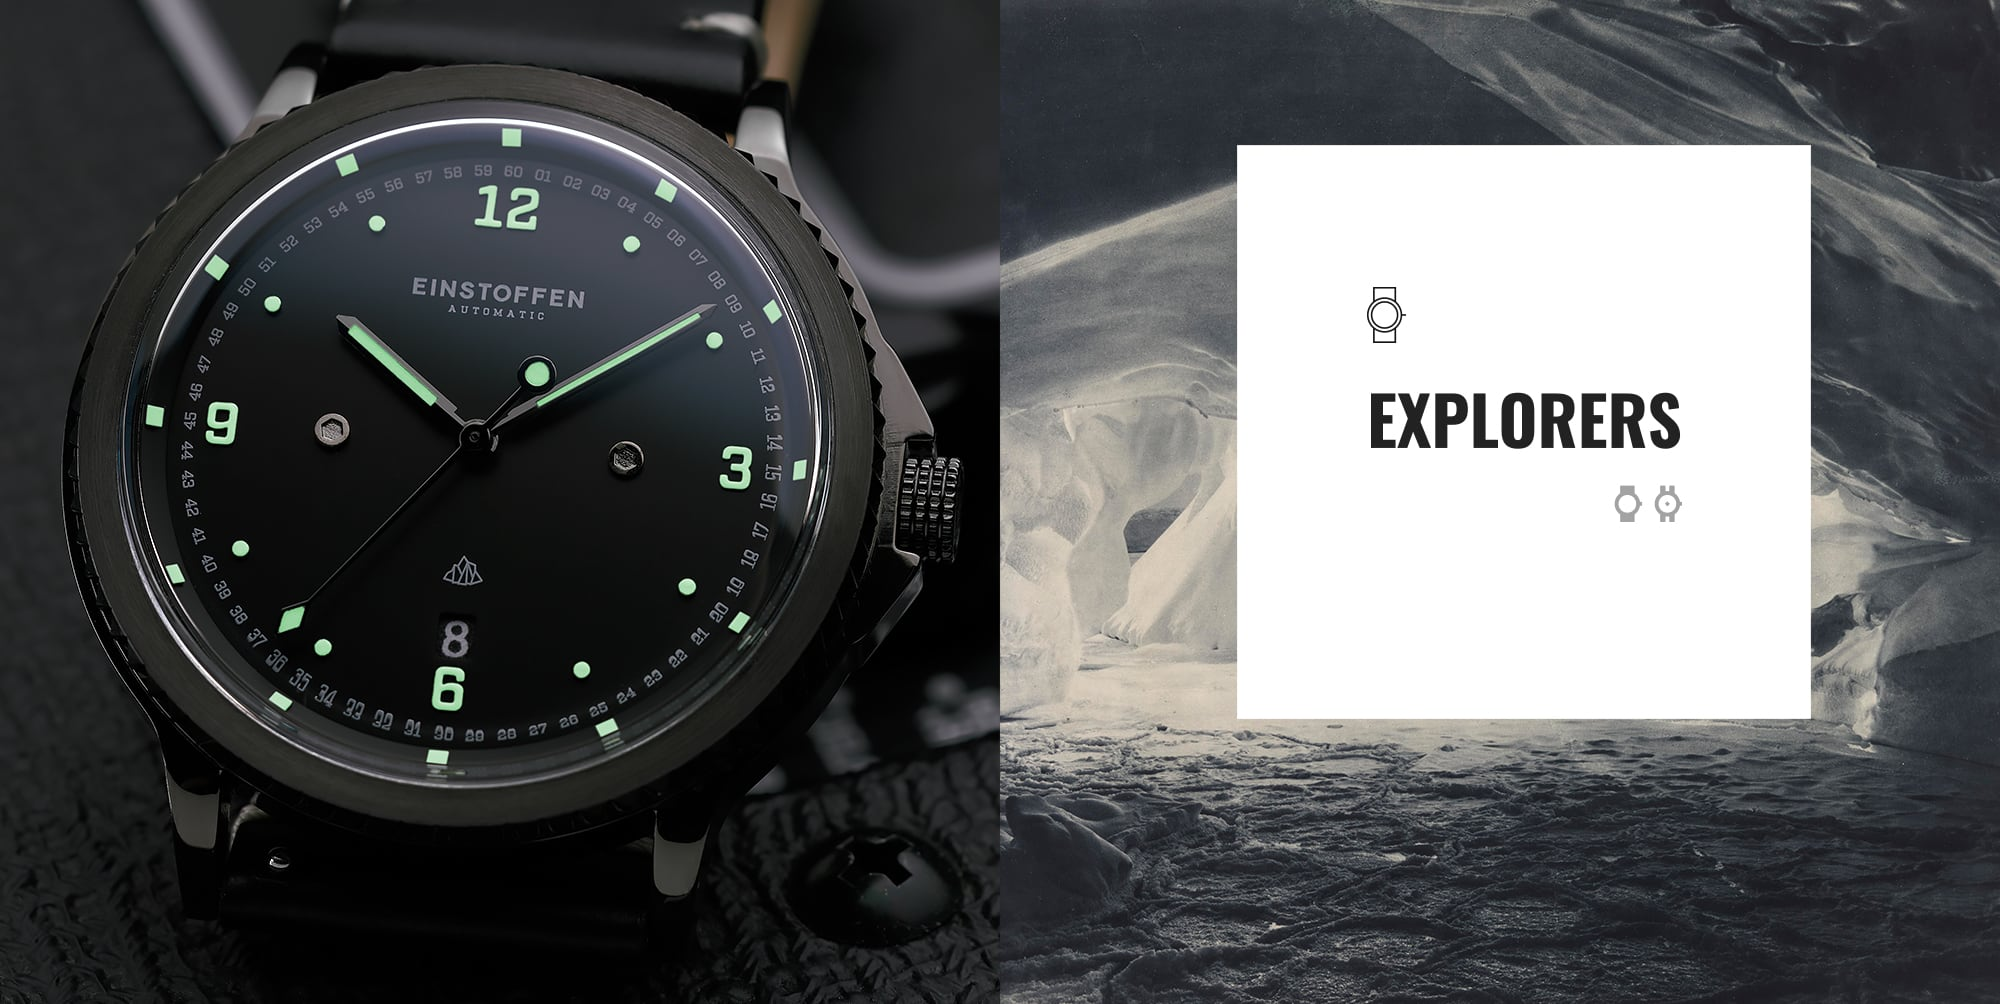 EXPLORER WATCHES